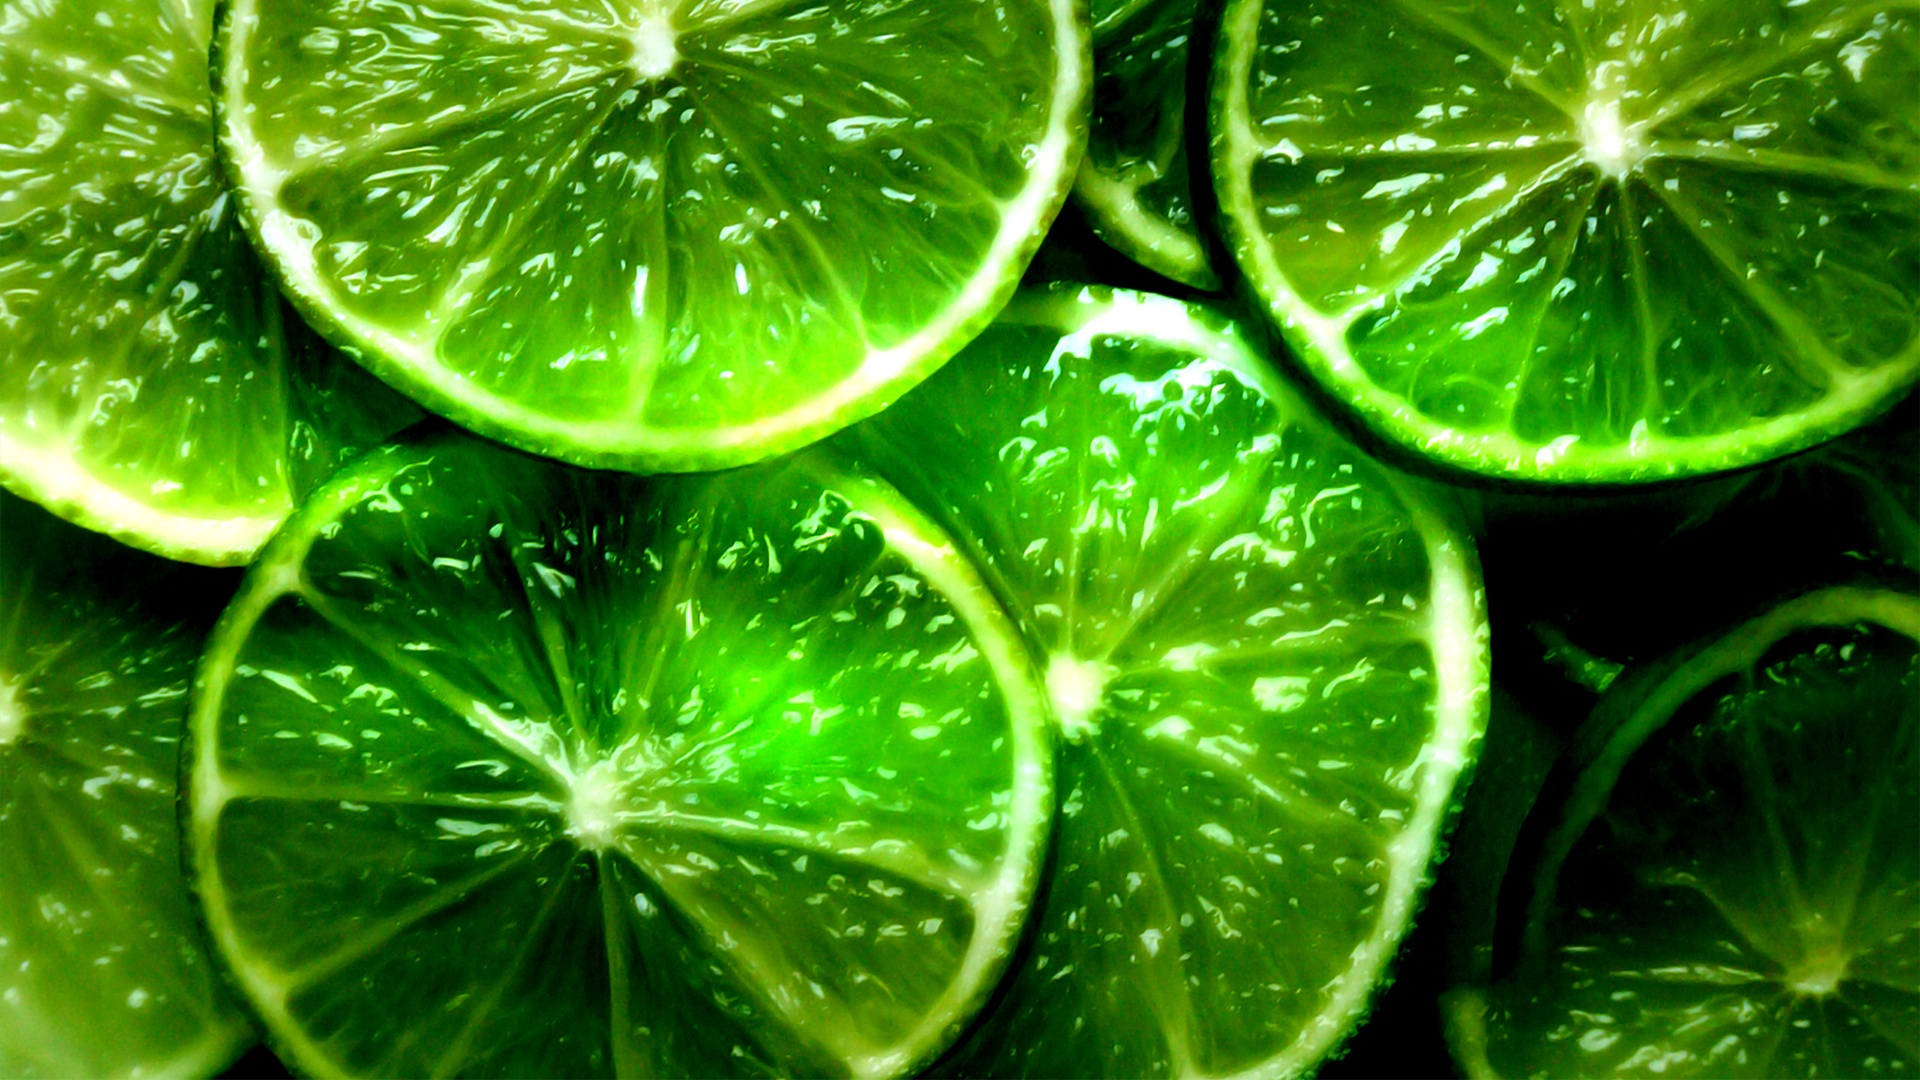 Lime Green Wallpaper 21080 1920x1080 Px ~ HDWallSource.com